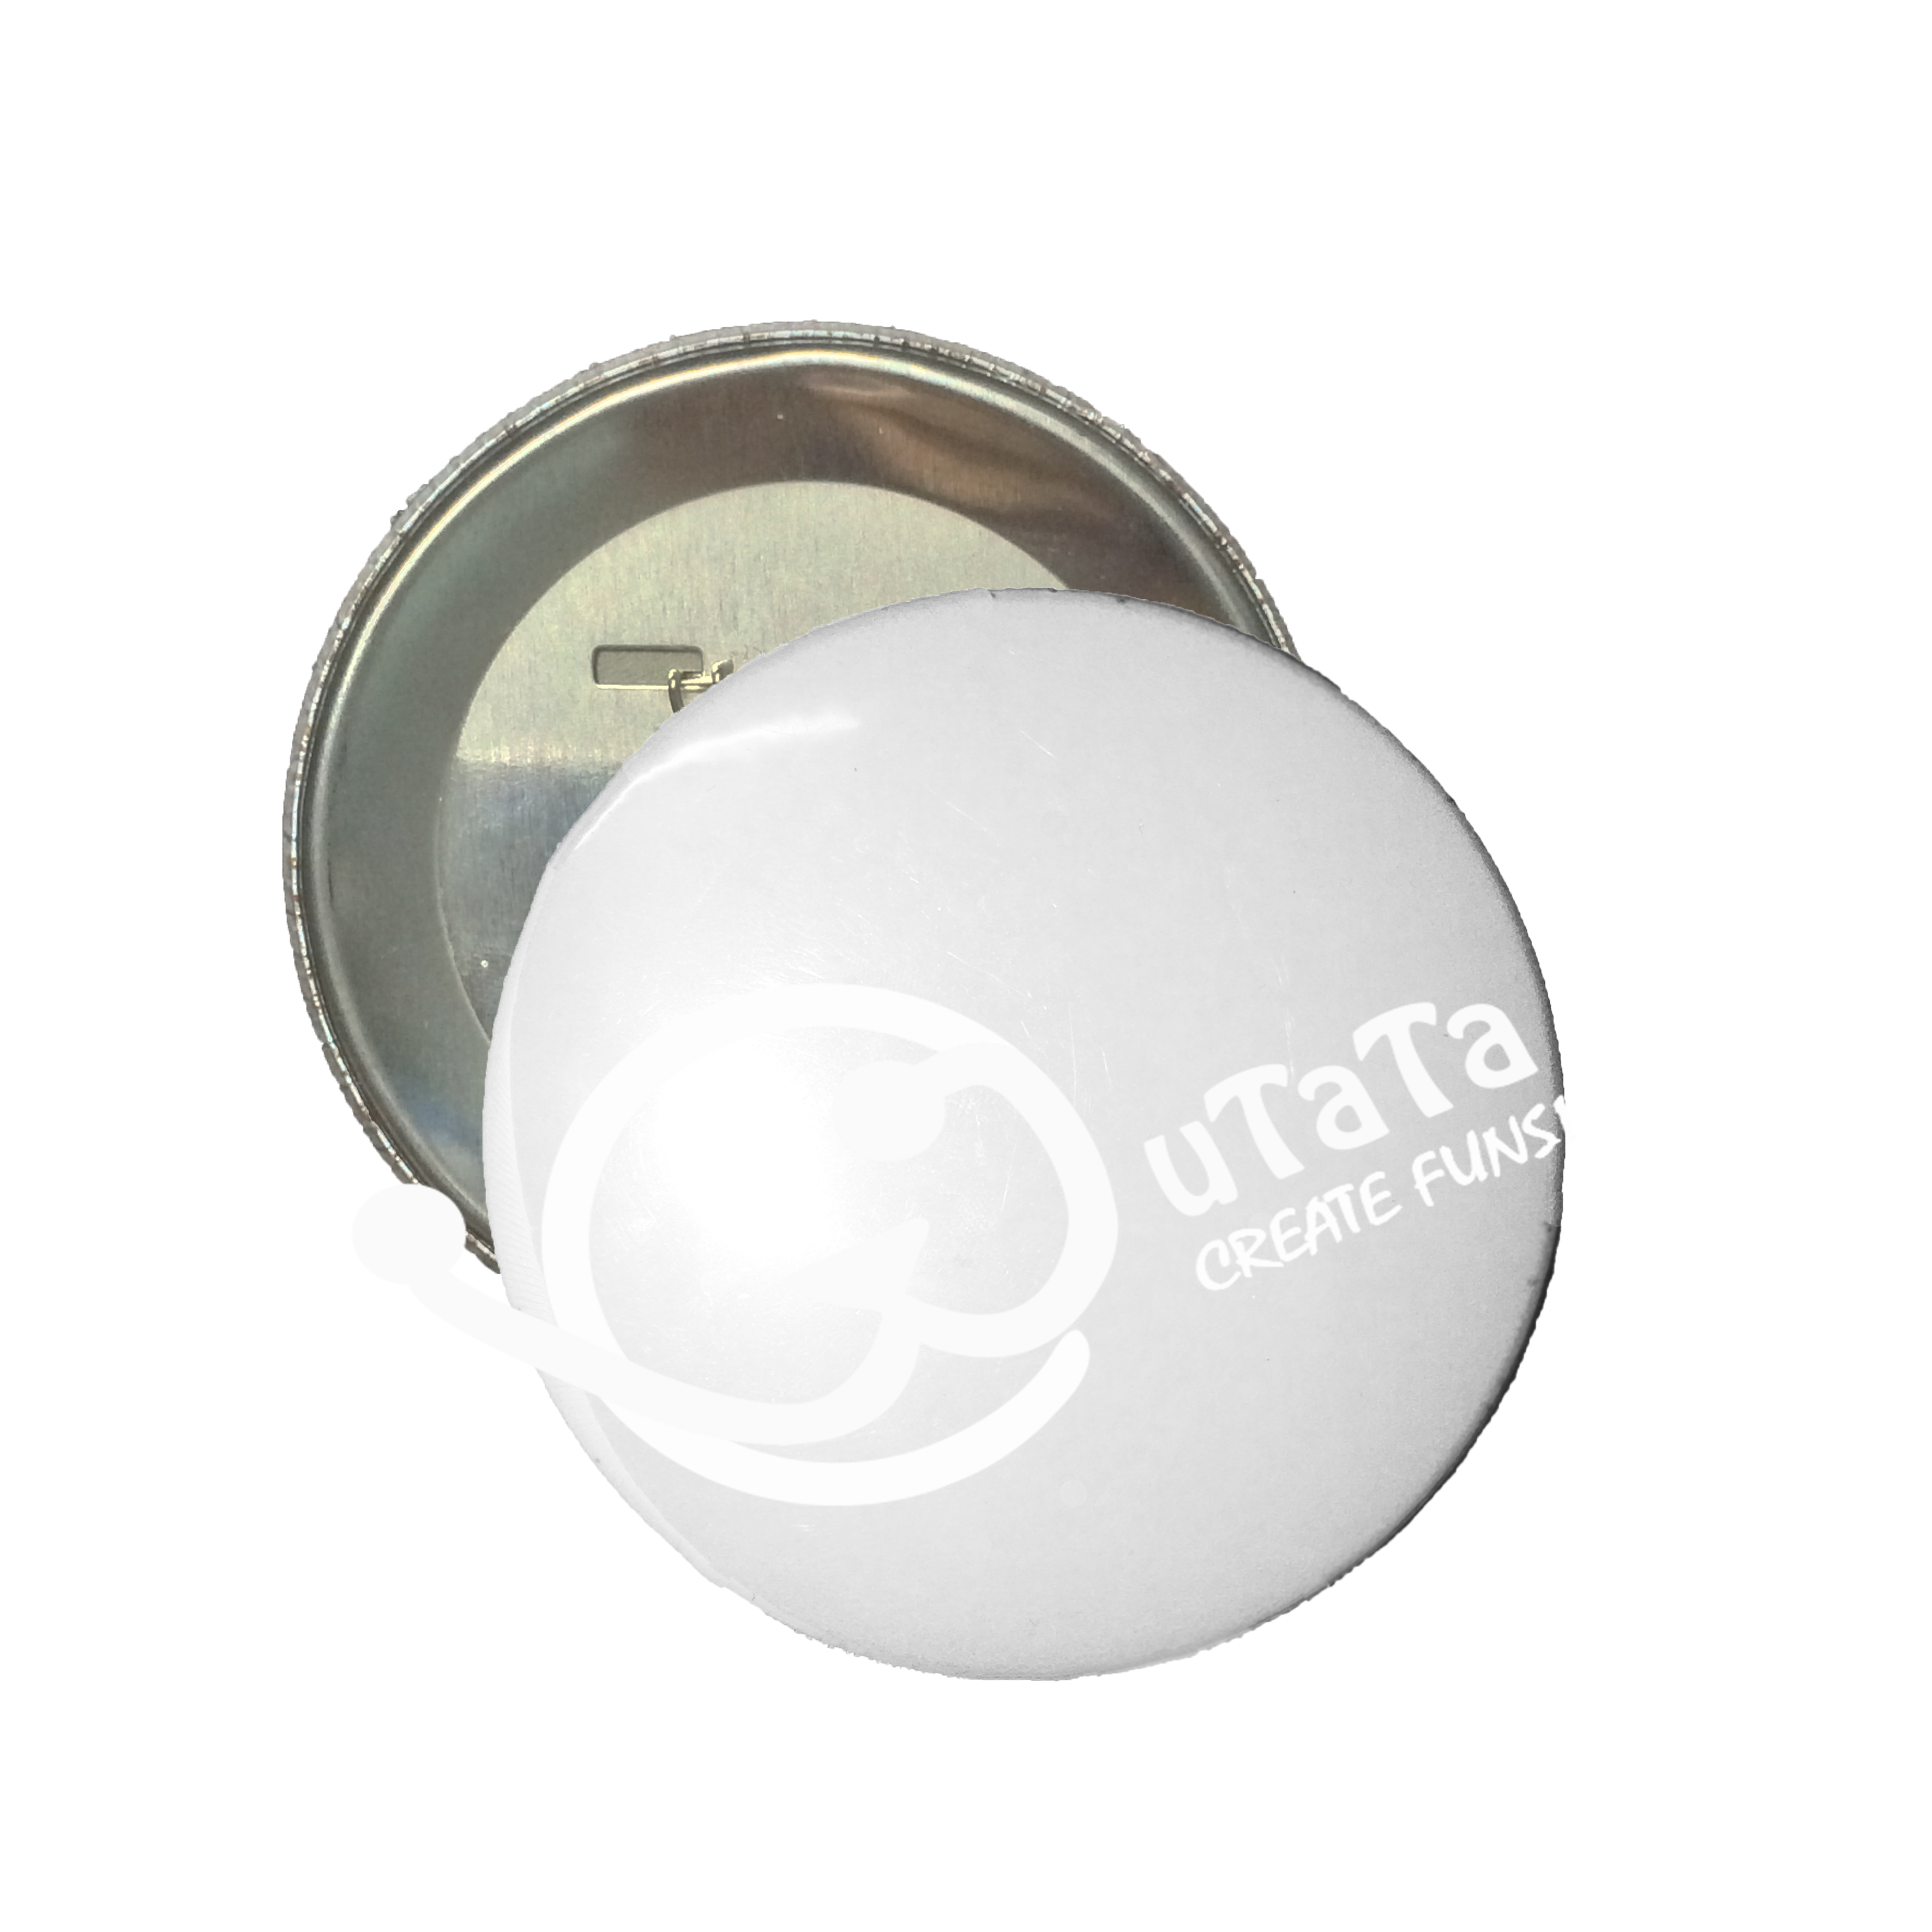 Our DIY 75mm Round button.  Put your only own design on #WuTaTa!